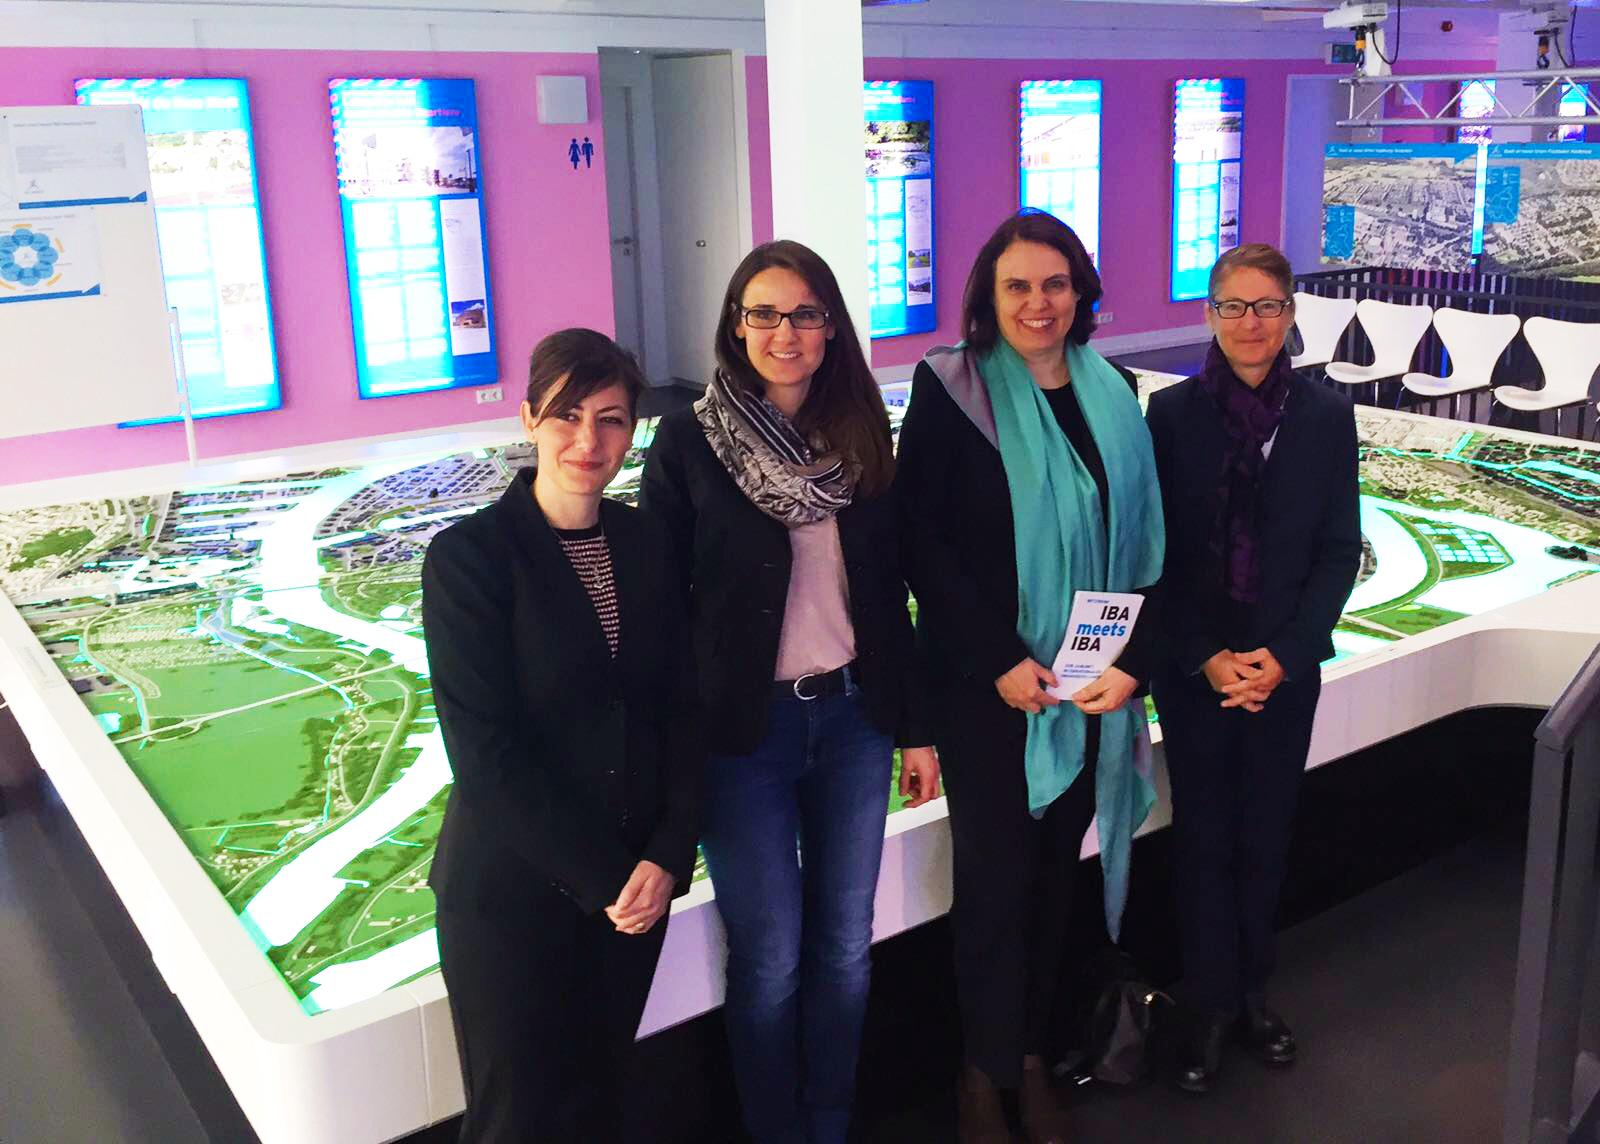 IBA Basel Managing Director Monica Linder-Guarnaccia, Karen Pein, Managing Director IBA Hamburg, President of Cantonal Government Elisabeth Ackermann and Sabine Horvath, Head of Basel Location Marketing, at the IBA-Dock 2017 in Hamburg.